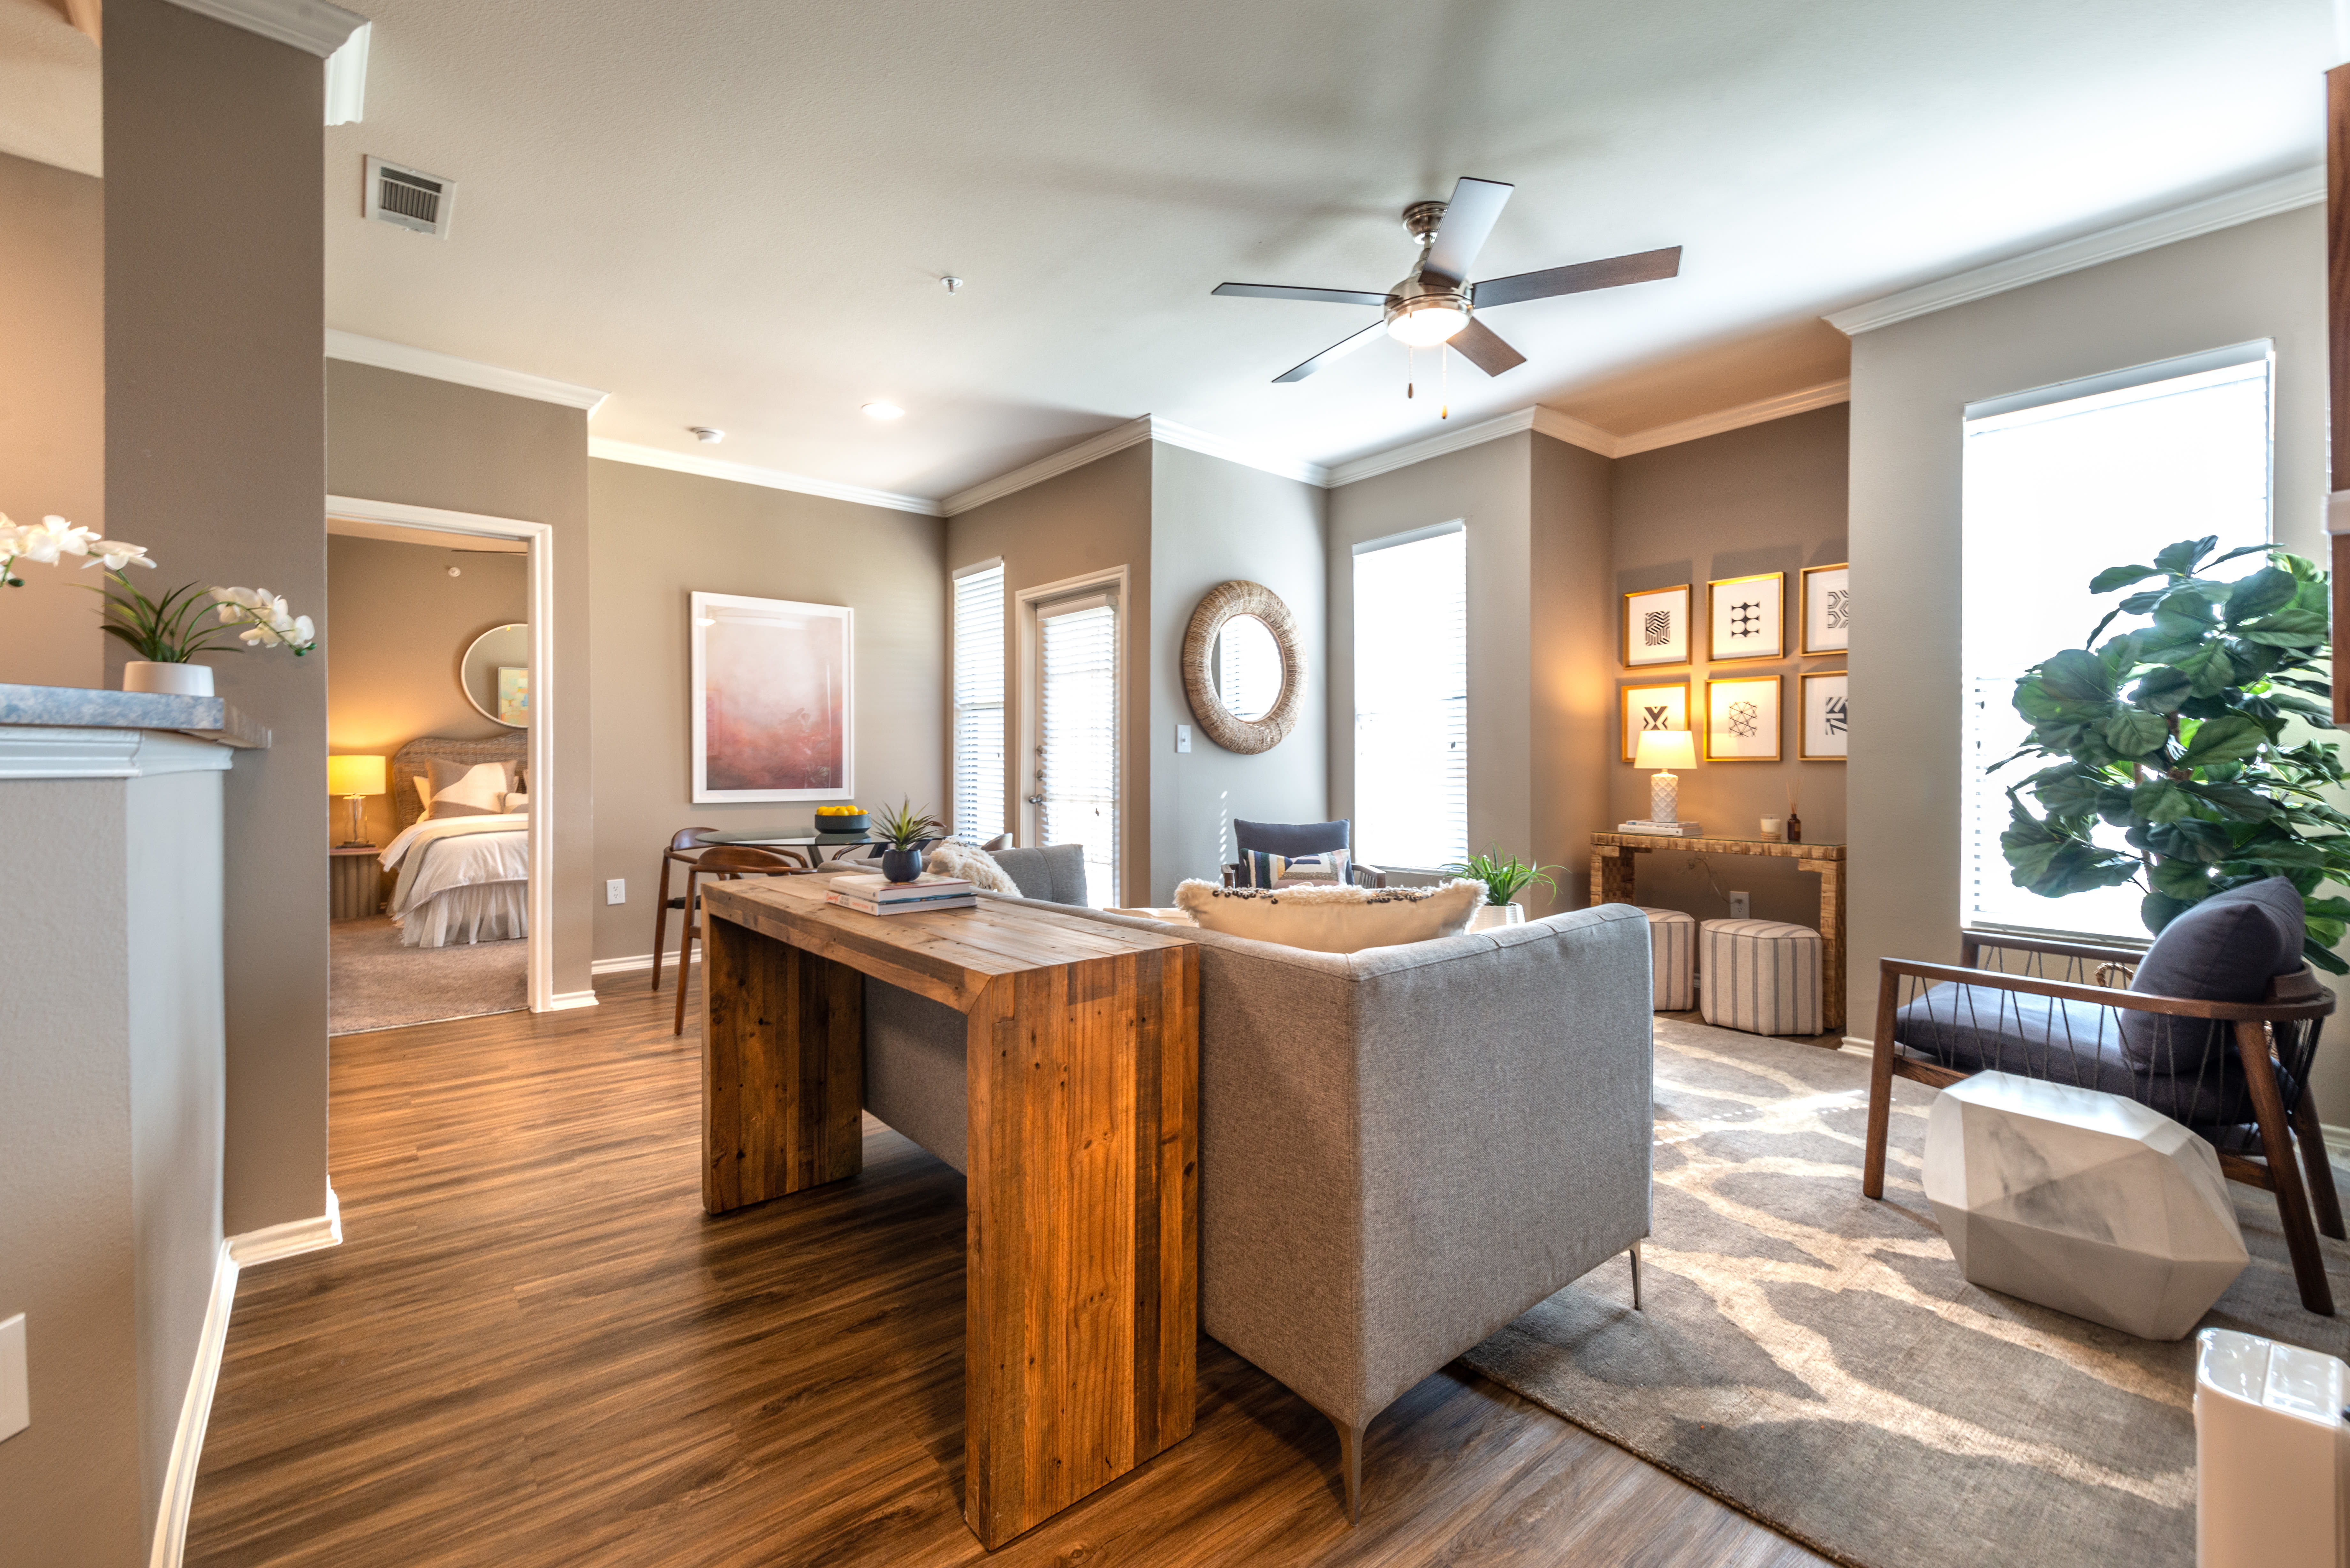 Crown molding and a ceiling fan in the living space of a model home at Olympus Team Ranch in Benbrook, Texas